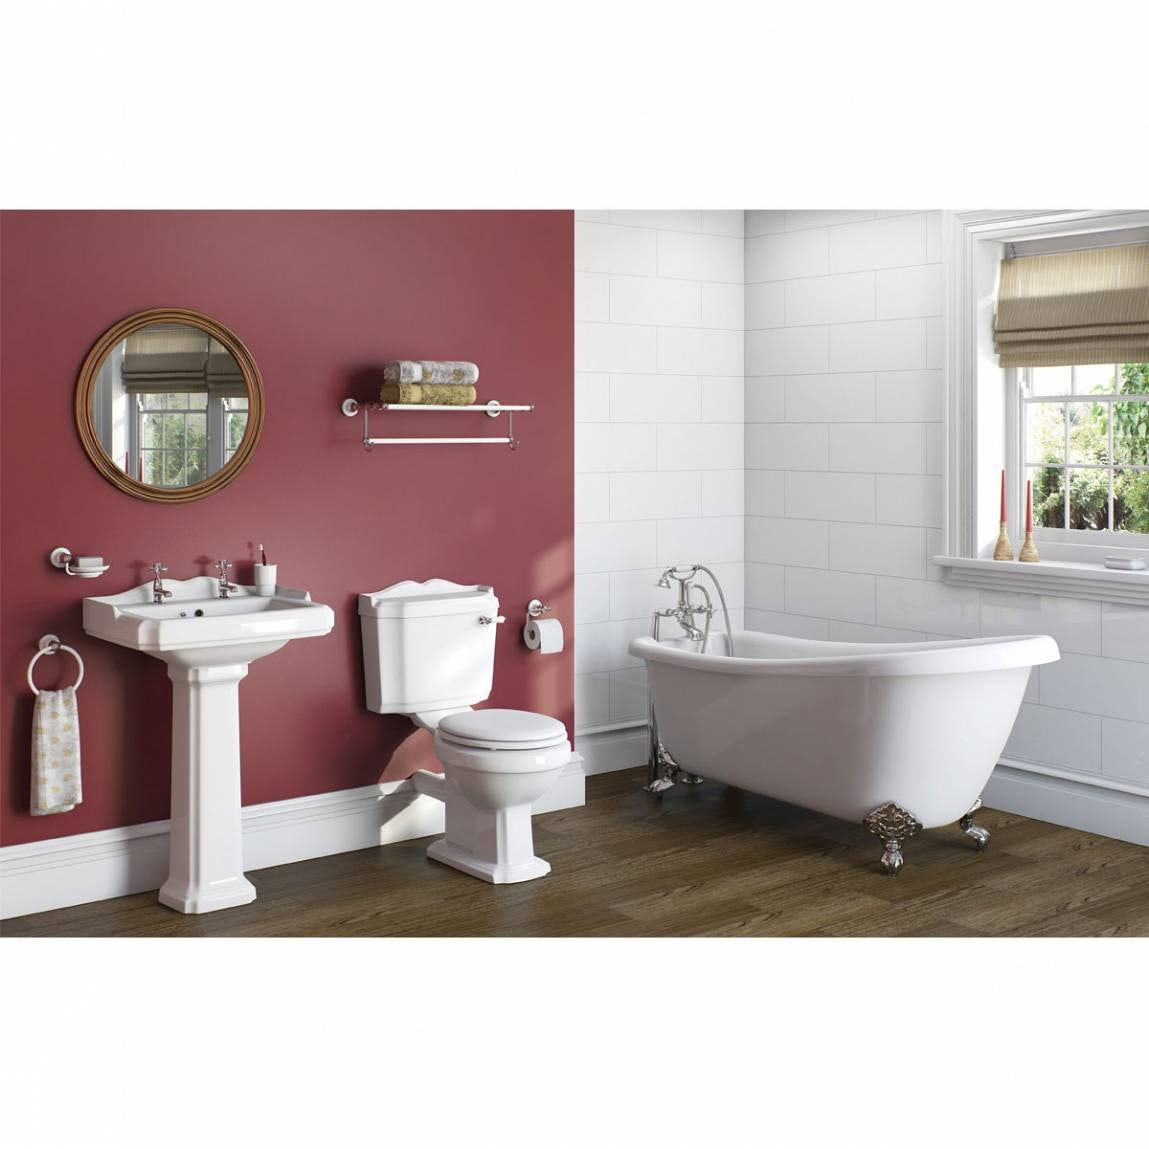 Winchester Bathroom Suite With Roll Top Bath And Taps Part 90